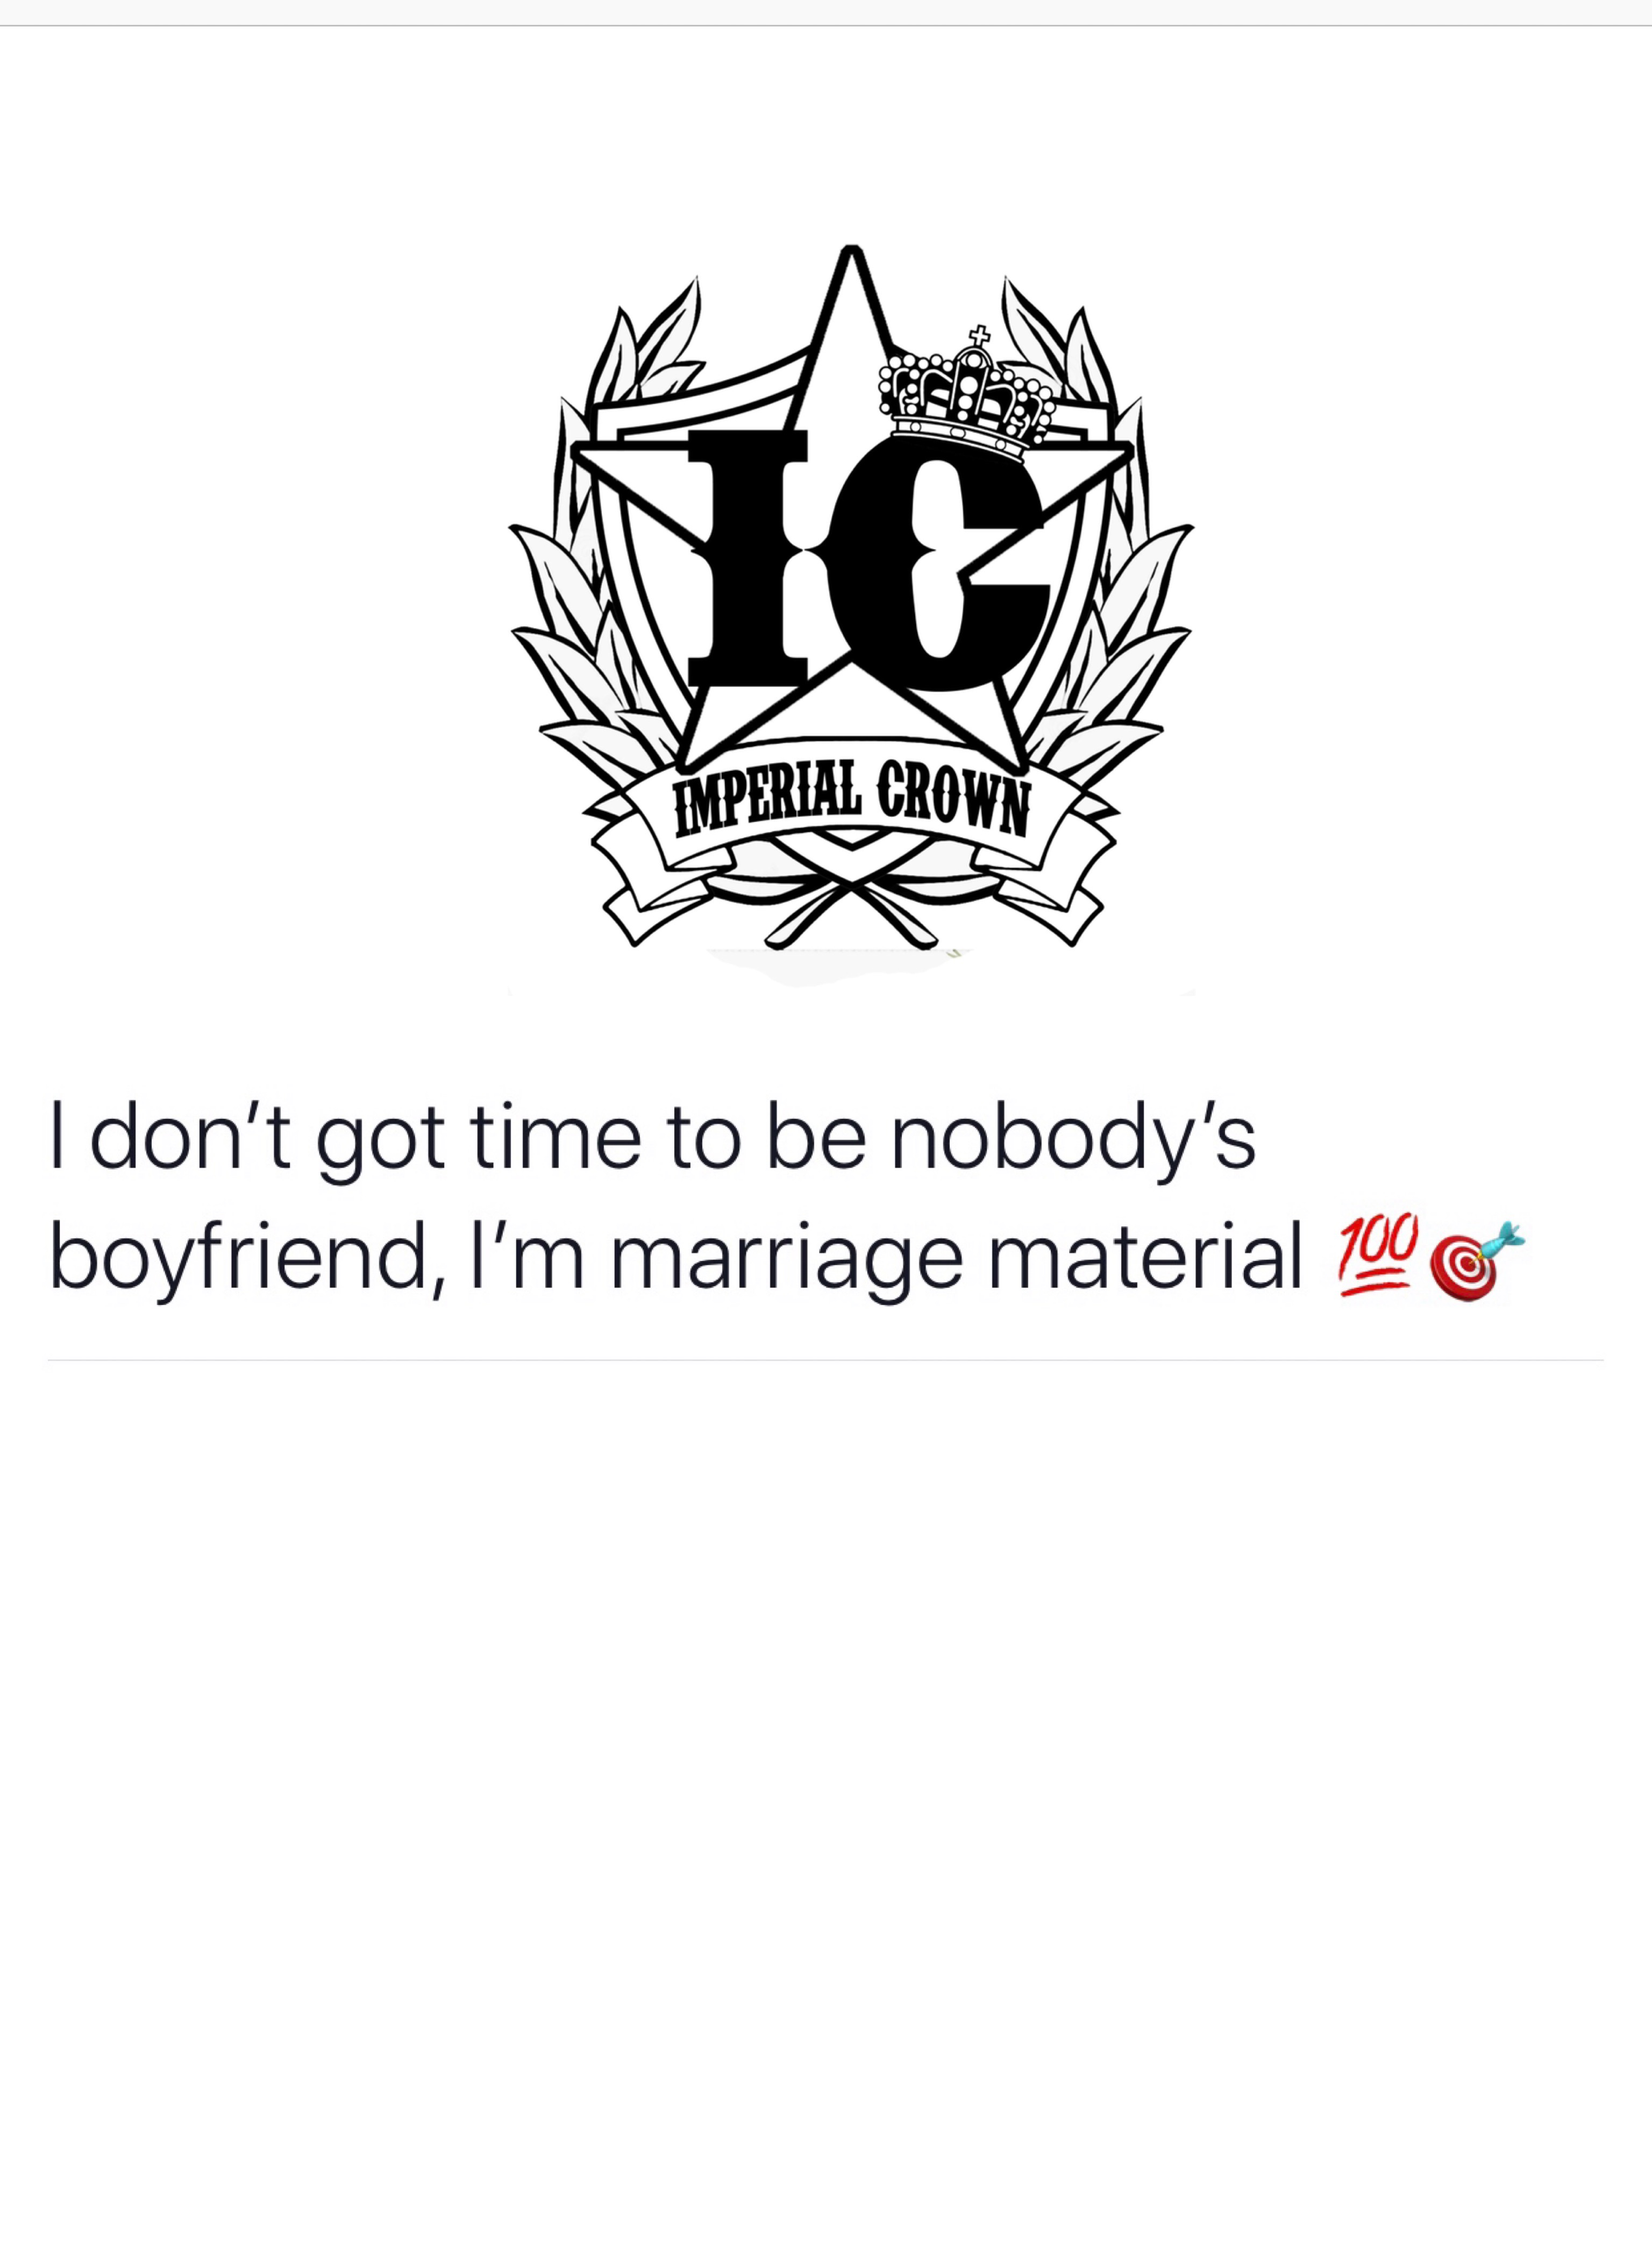 I don't got time to be nobodies boyfriend I am marriage material